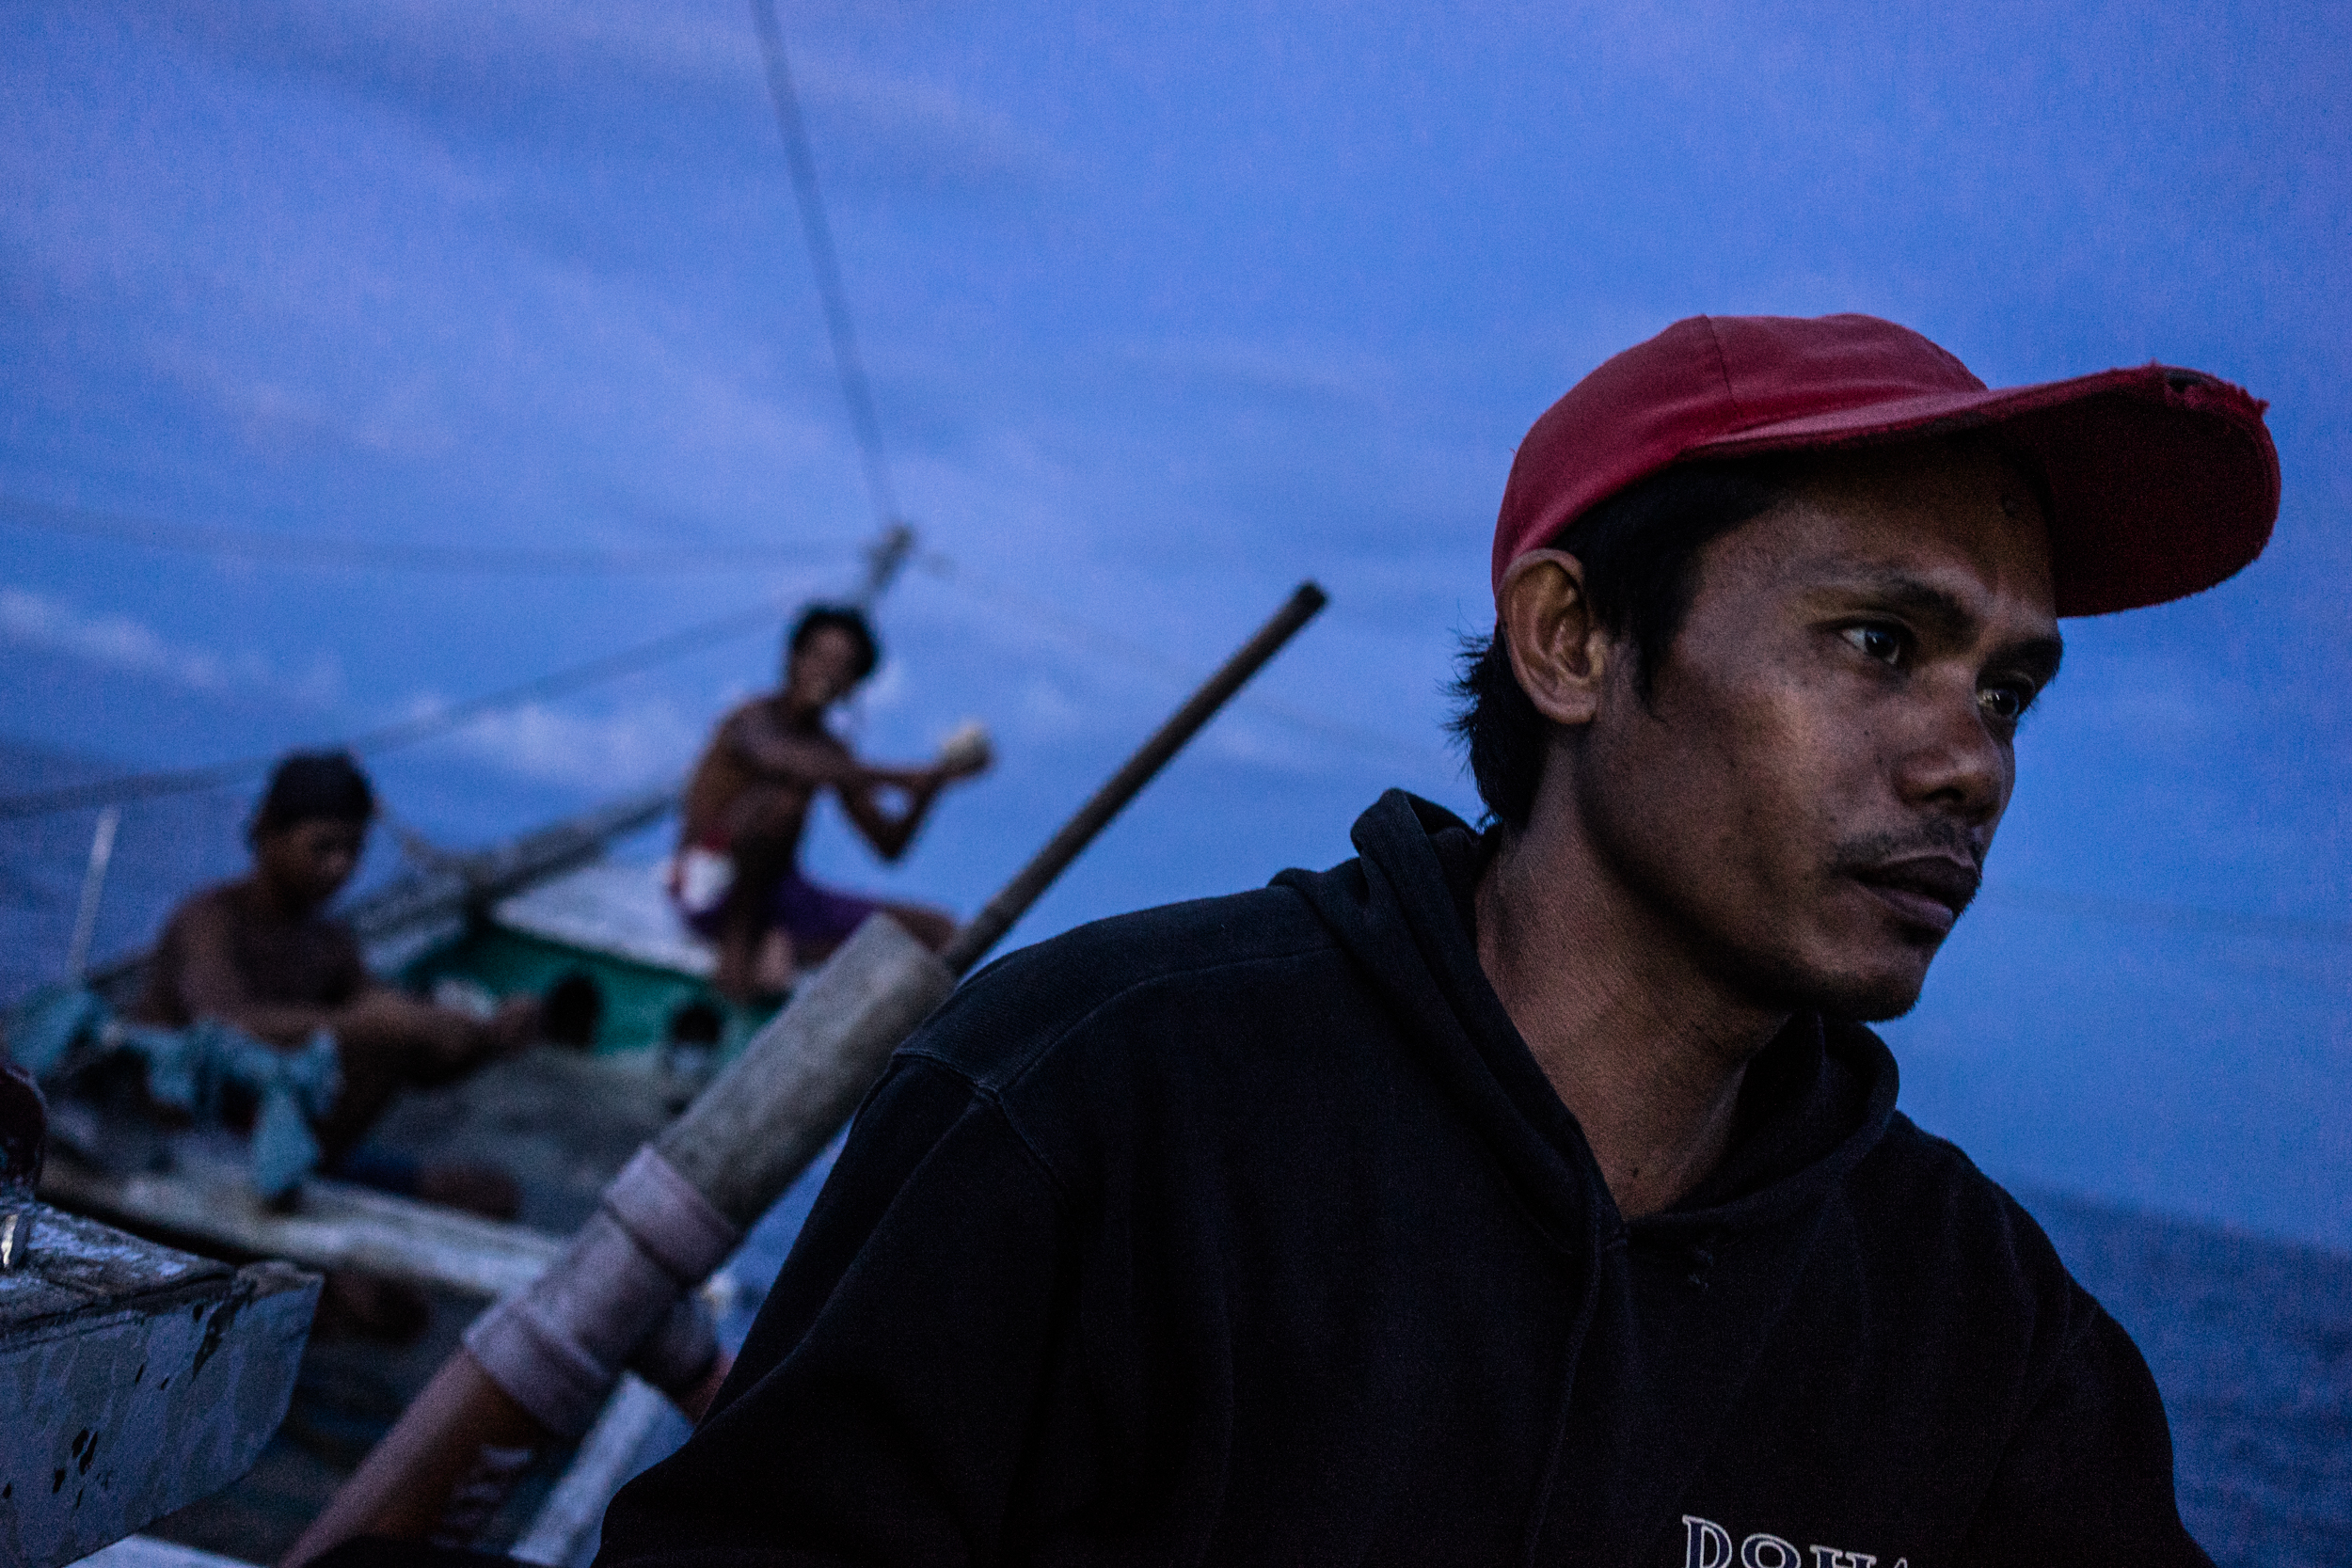 Kalibo, Philippines - September 21, 2015: Conrad Banihit is seen in a local fishing boat in Kalibo, Philippines. Because of the low wage he earns, Conrad decided to go aboard a Taiwanese fishing vessel, to which he was illegally recruited, then abused on board, and was not paid the salary he was promised. Hannah Reyes